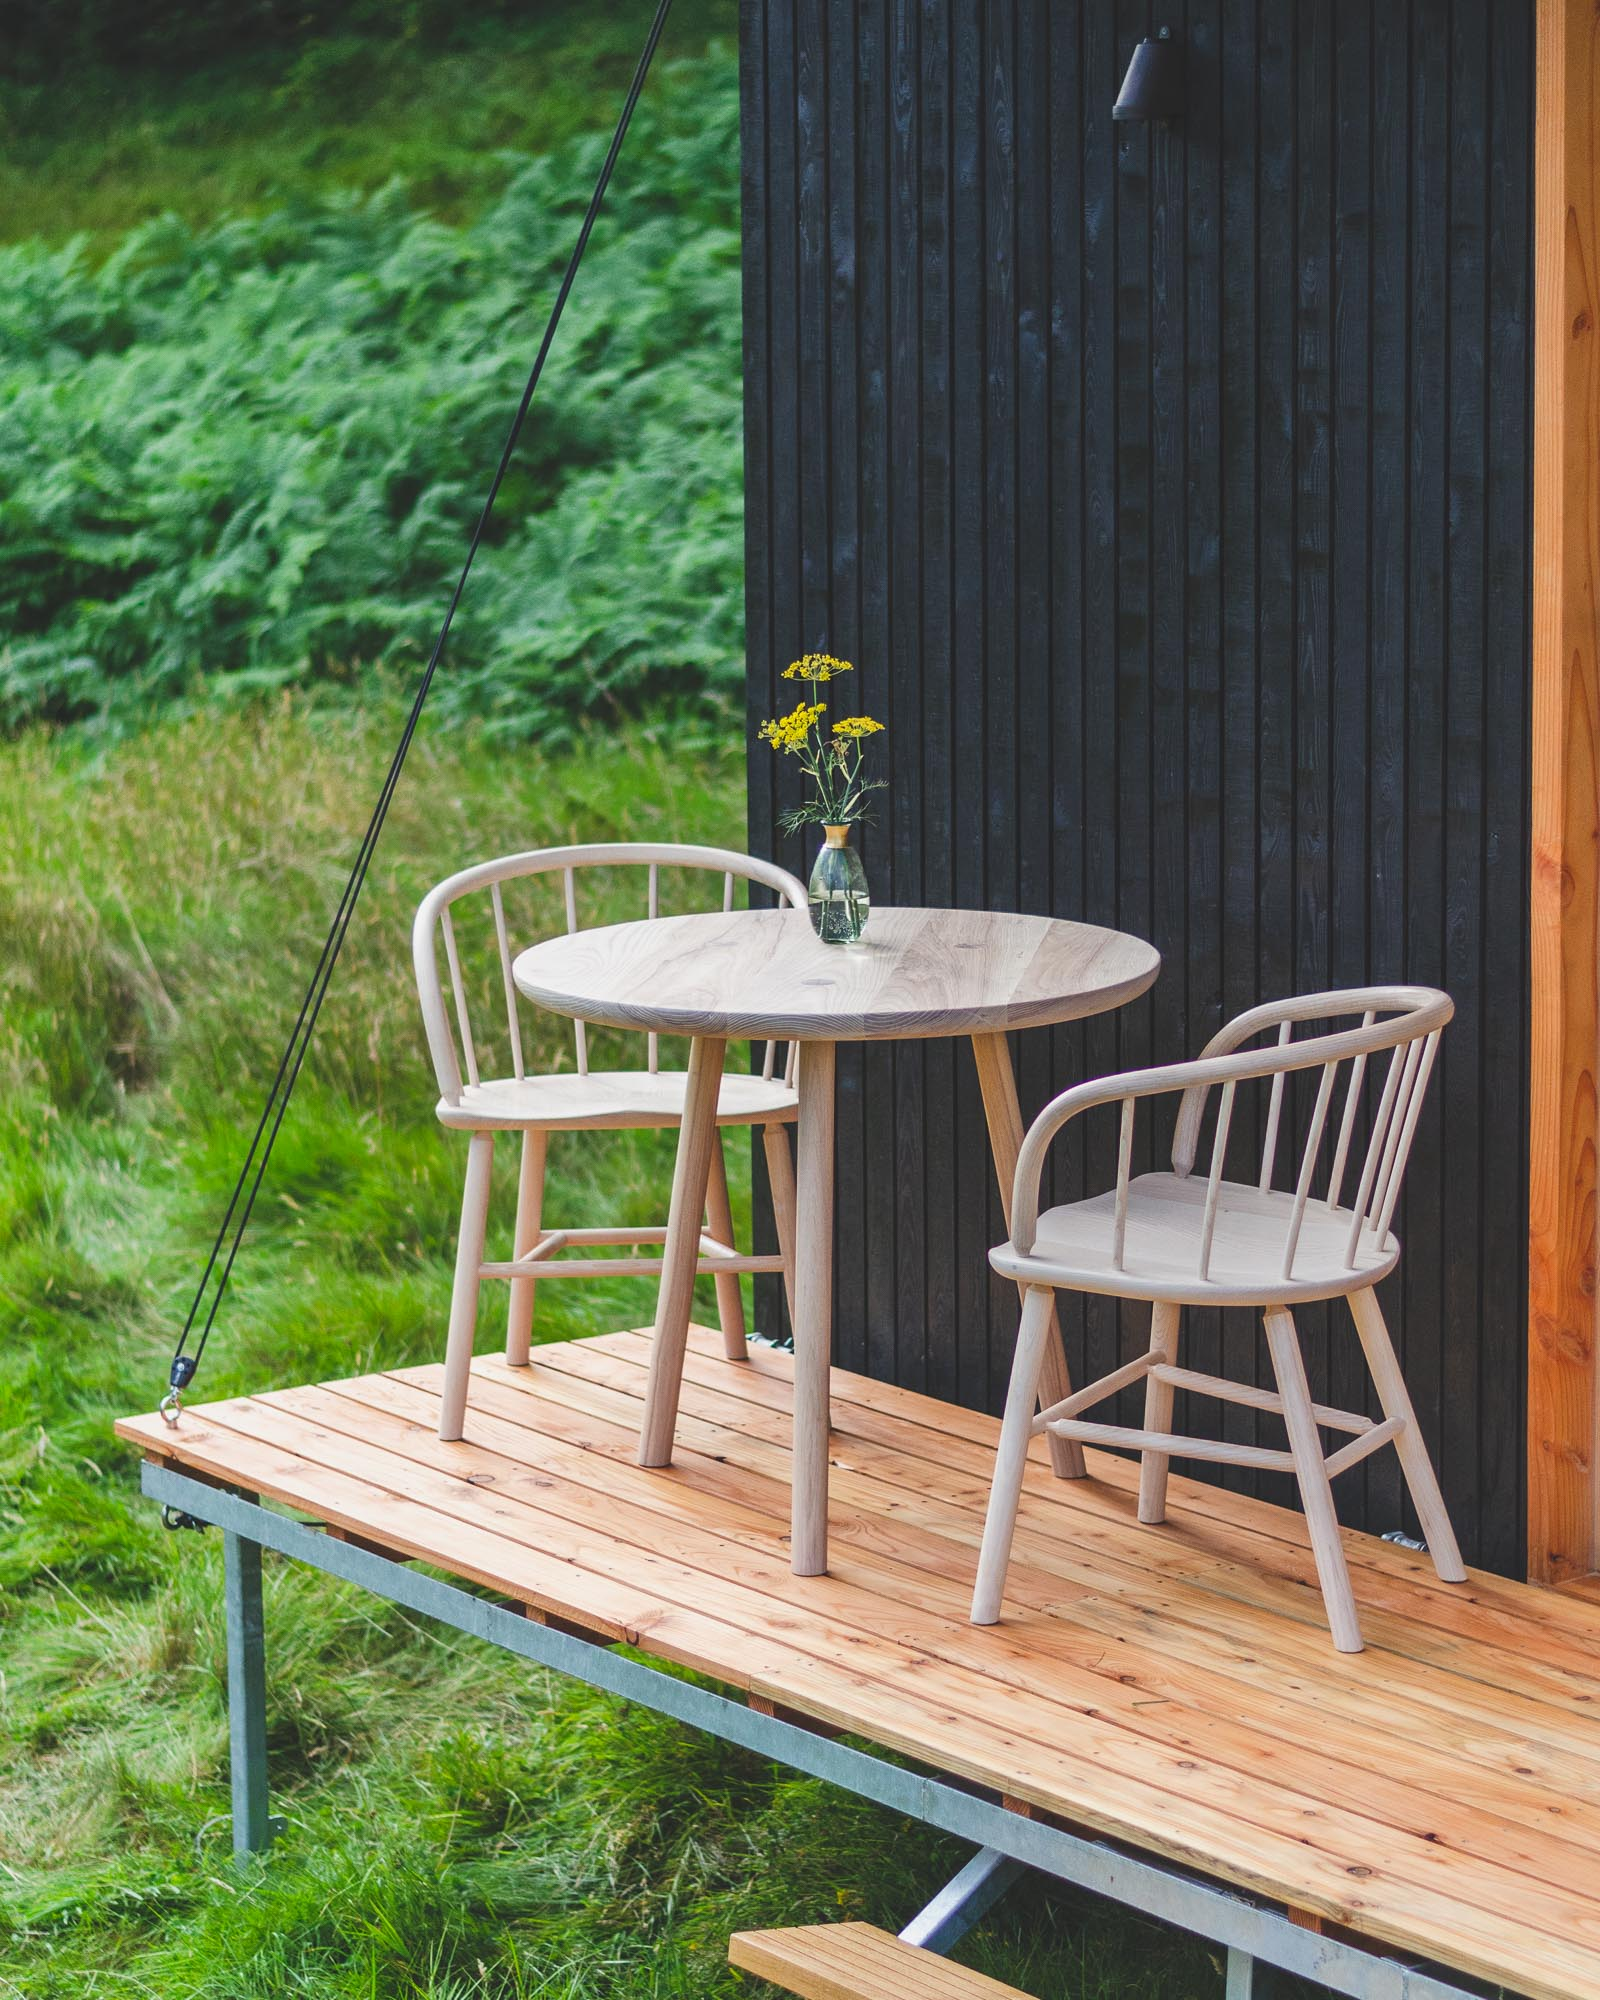 off grid tiny wooden nomad cabin office with black cladding, outdoor chairs and table on wooden deck